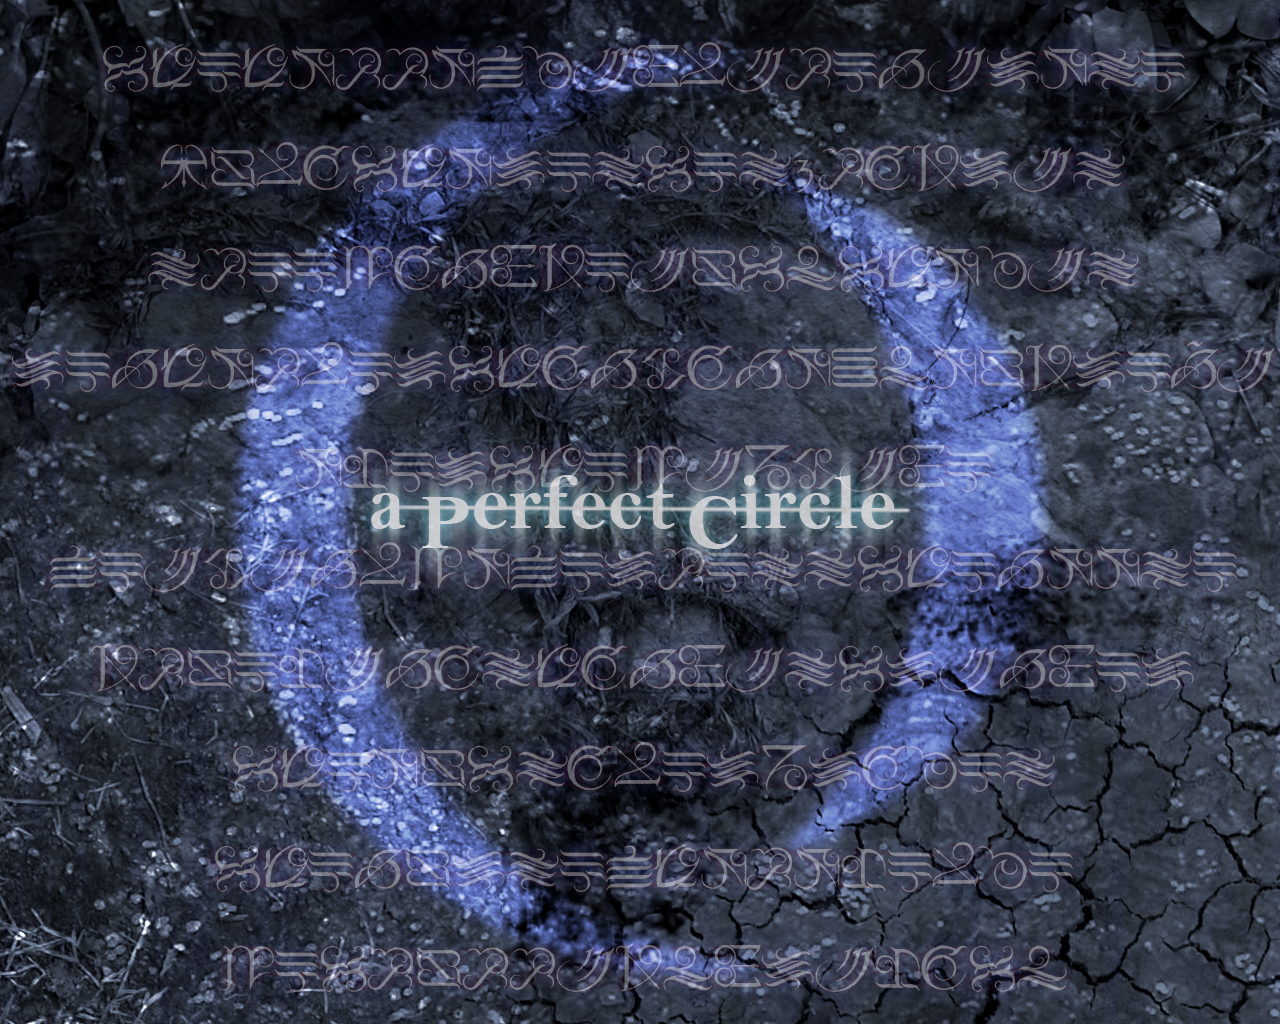 A Perfect Circle Wallpaper by orko46 2 1280x1024